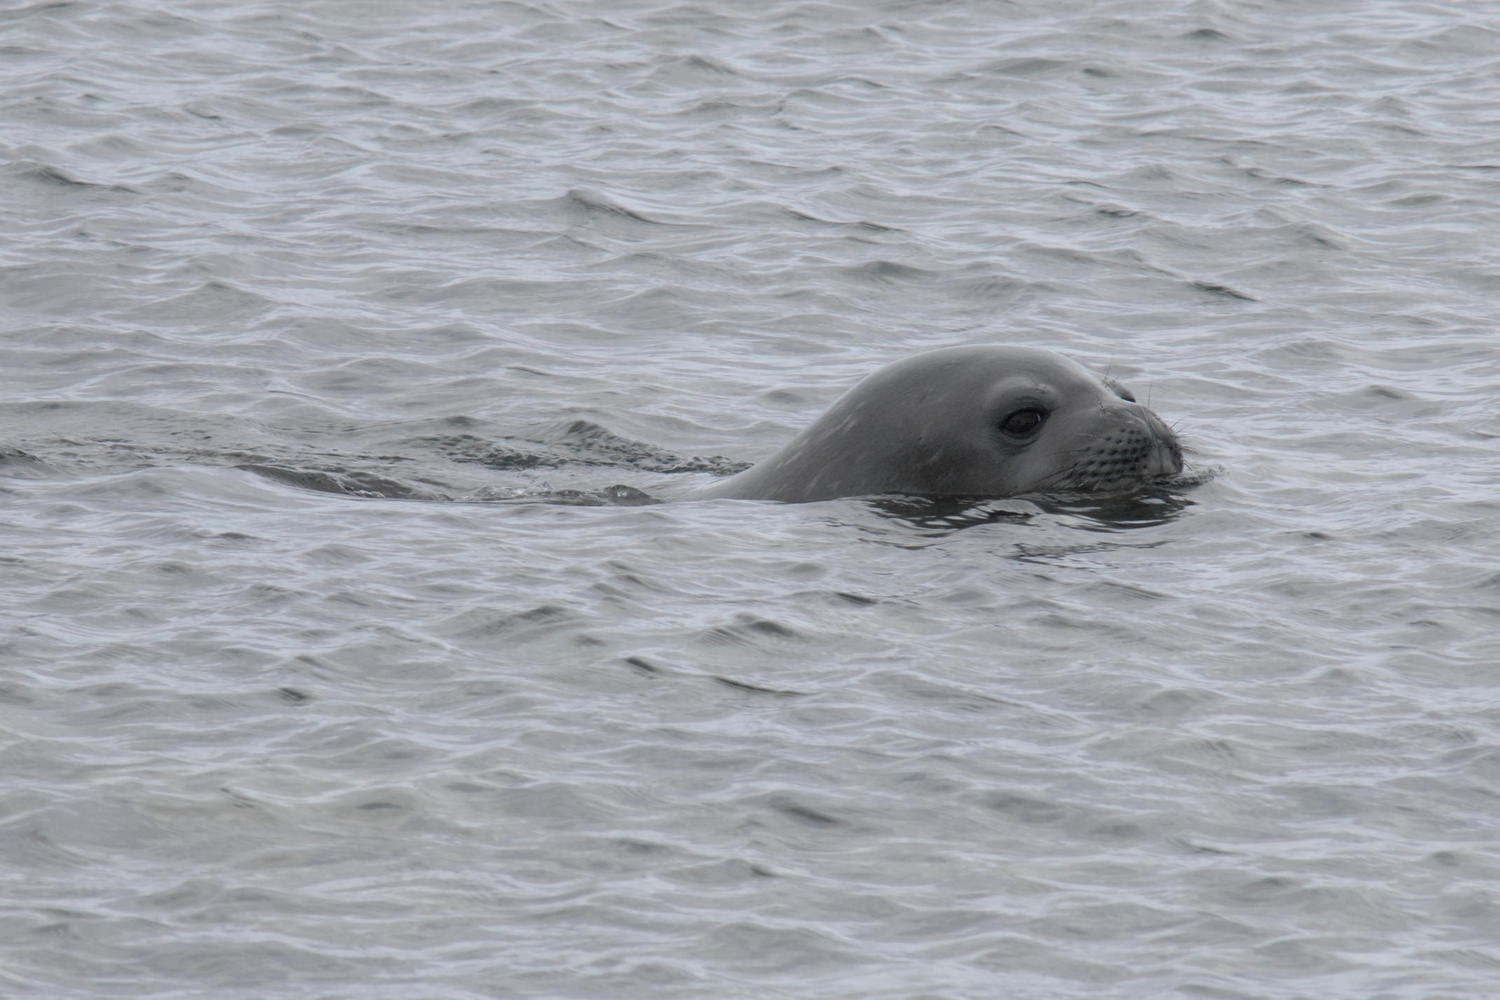 A weddell seal relishes the polar waters